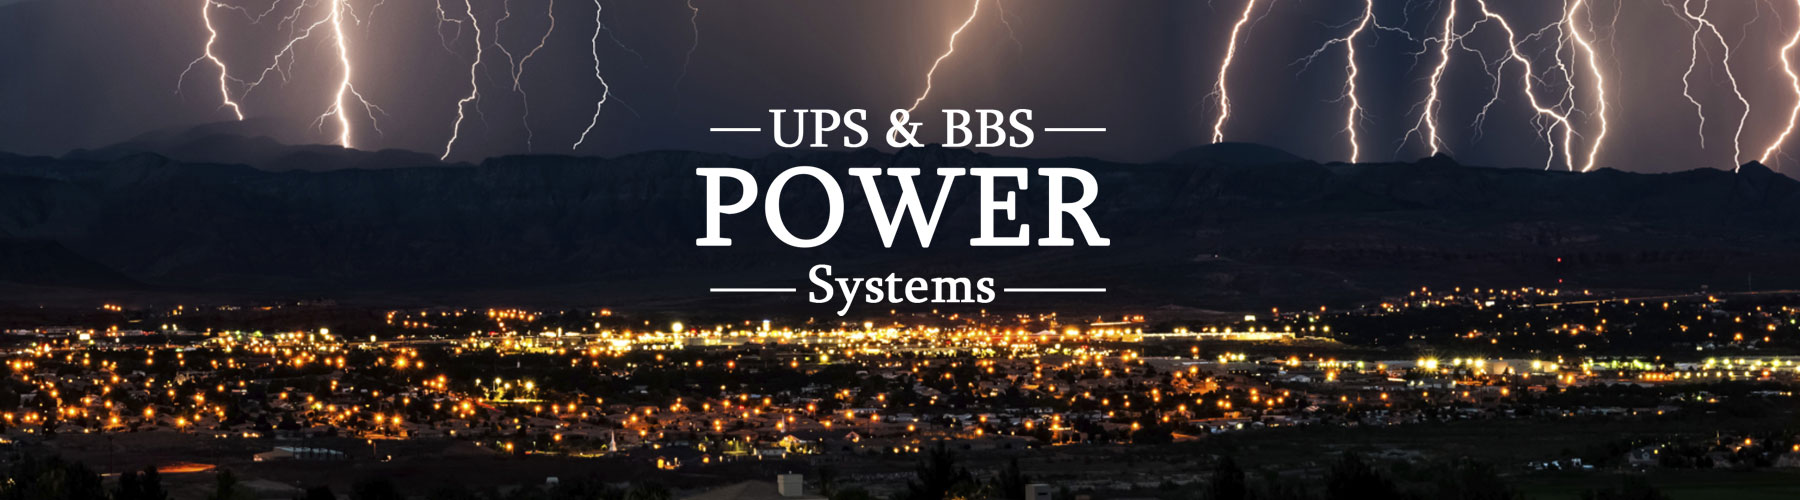 ups-bbs-power-systems